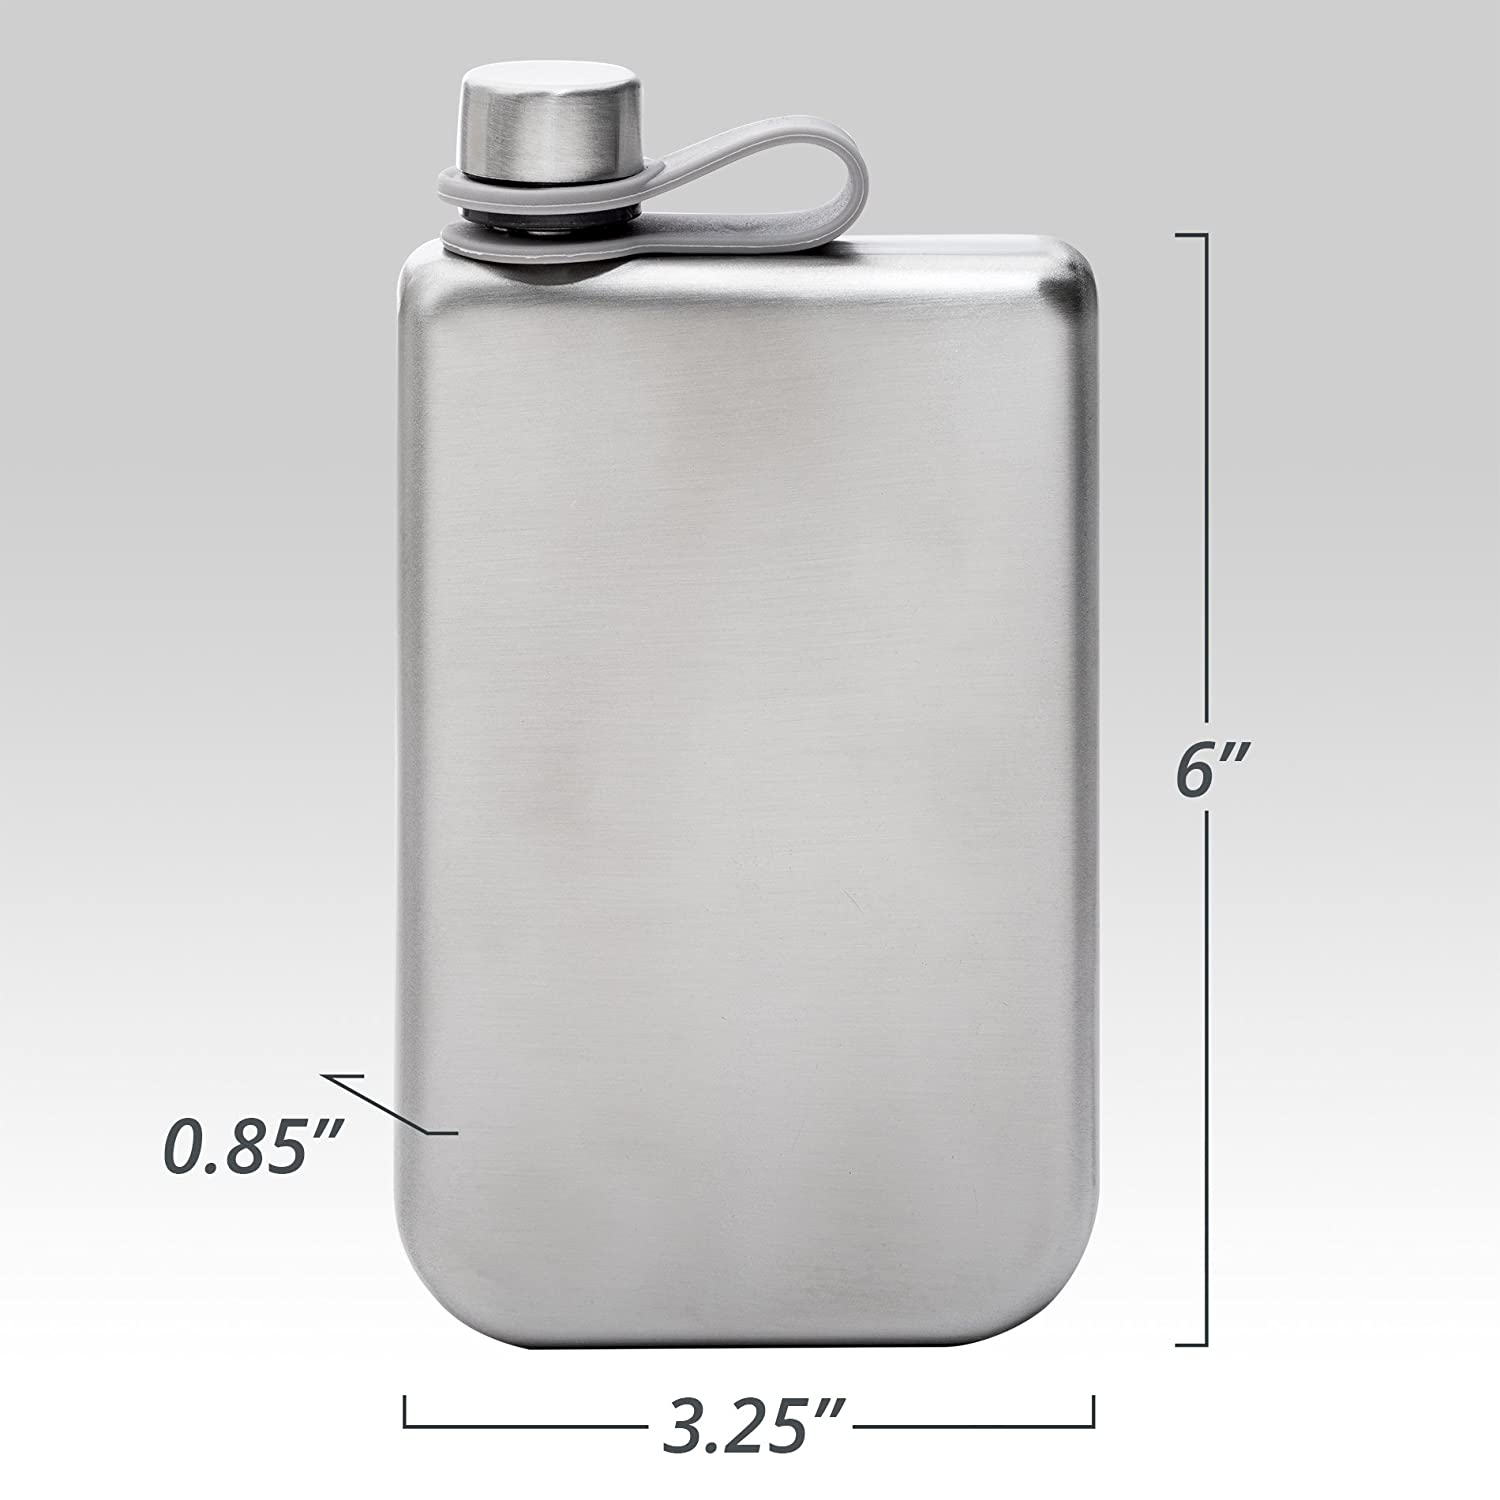 Scotch Vodka Whiskey Rum 8oz Hip Flask /& Funnel Set Stainless Steel Pocket Container for Drinking Liquor e.g can be Engraved VonWulf Rust /& Leak Proof Discreet Alcohol Canteen